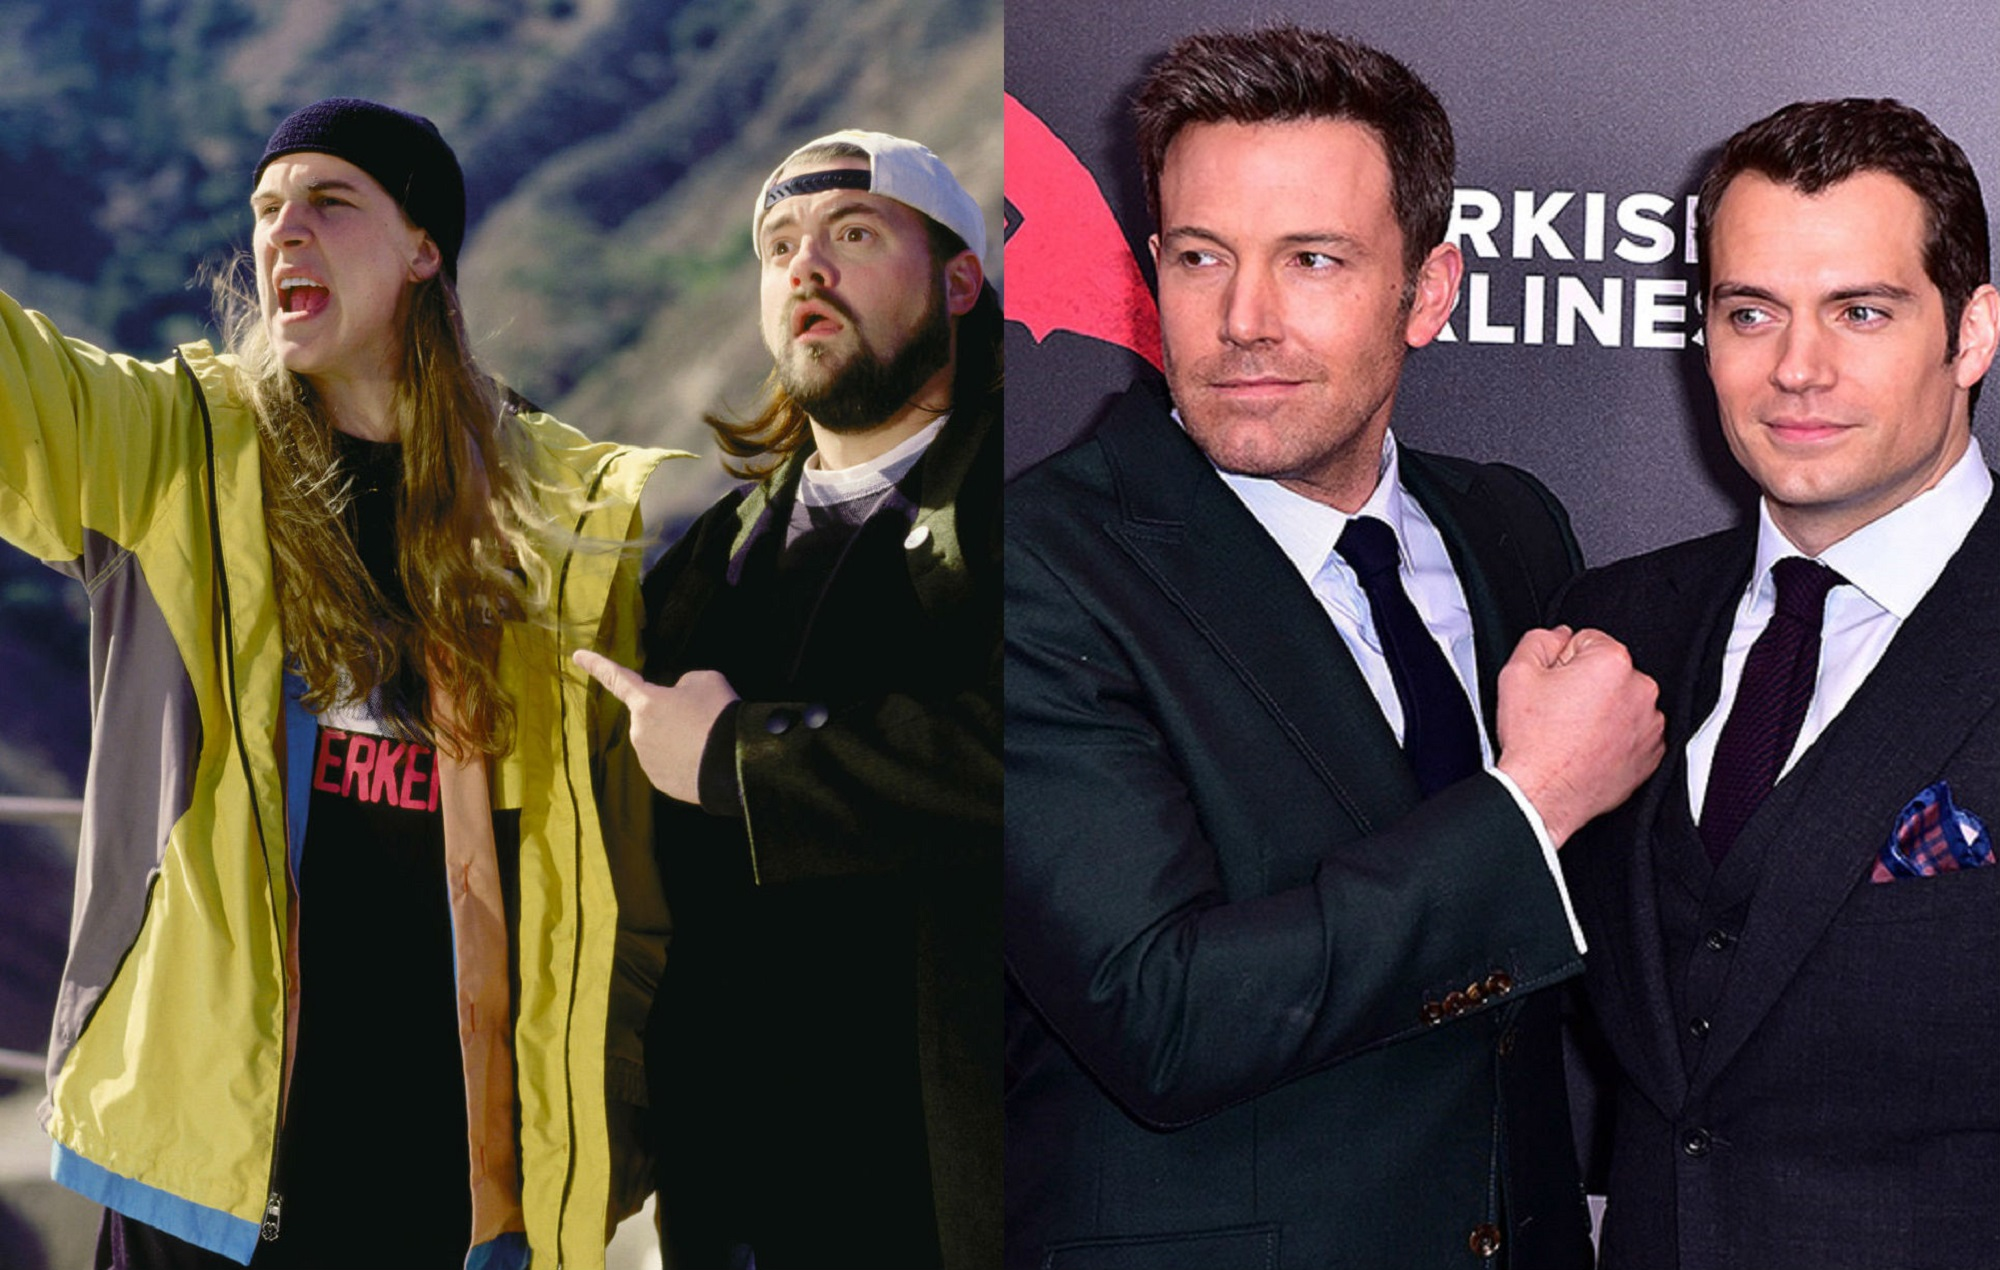 Jay and Silent Bob and Ben Affleck and Henry Cavill